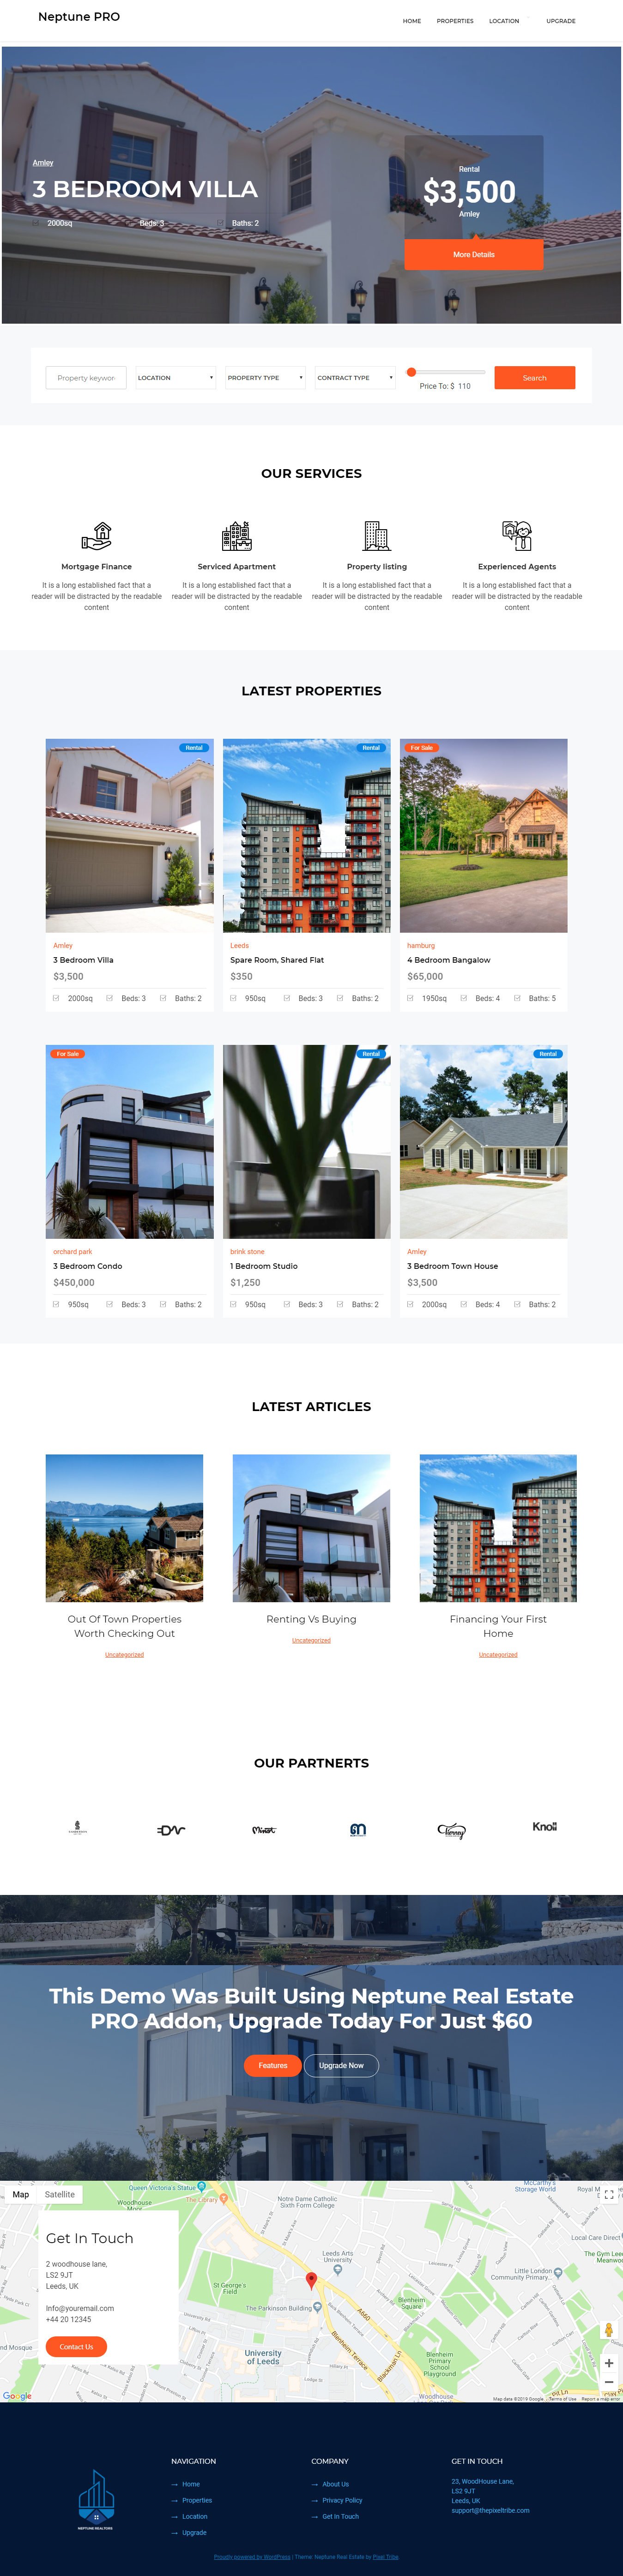 neptune best free home rental property wordpress theme - 10+ Best Free Home Rental and Property WordPress Themes